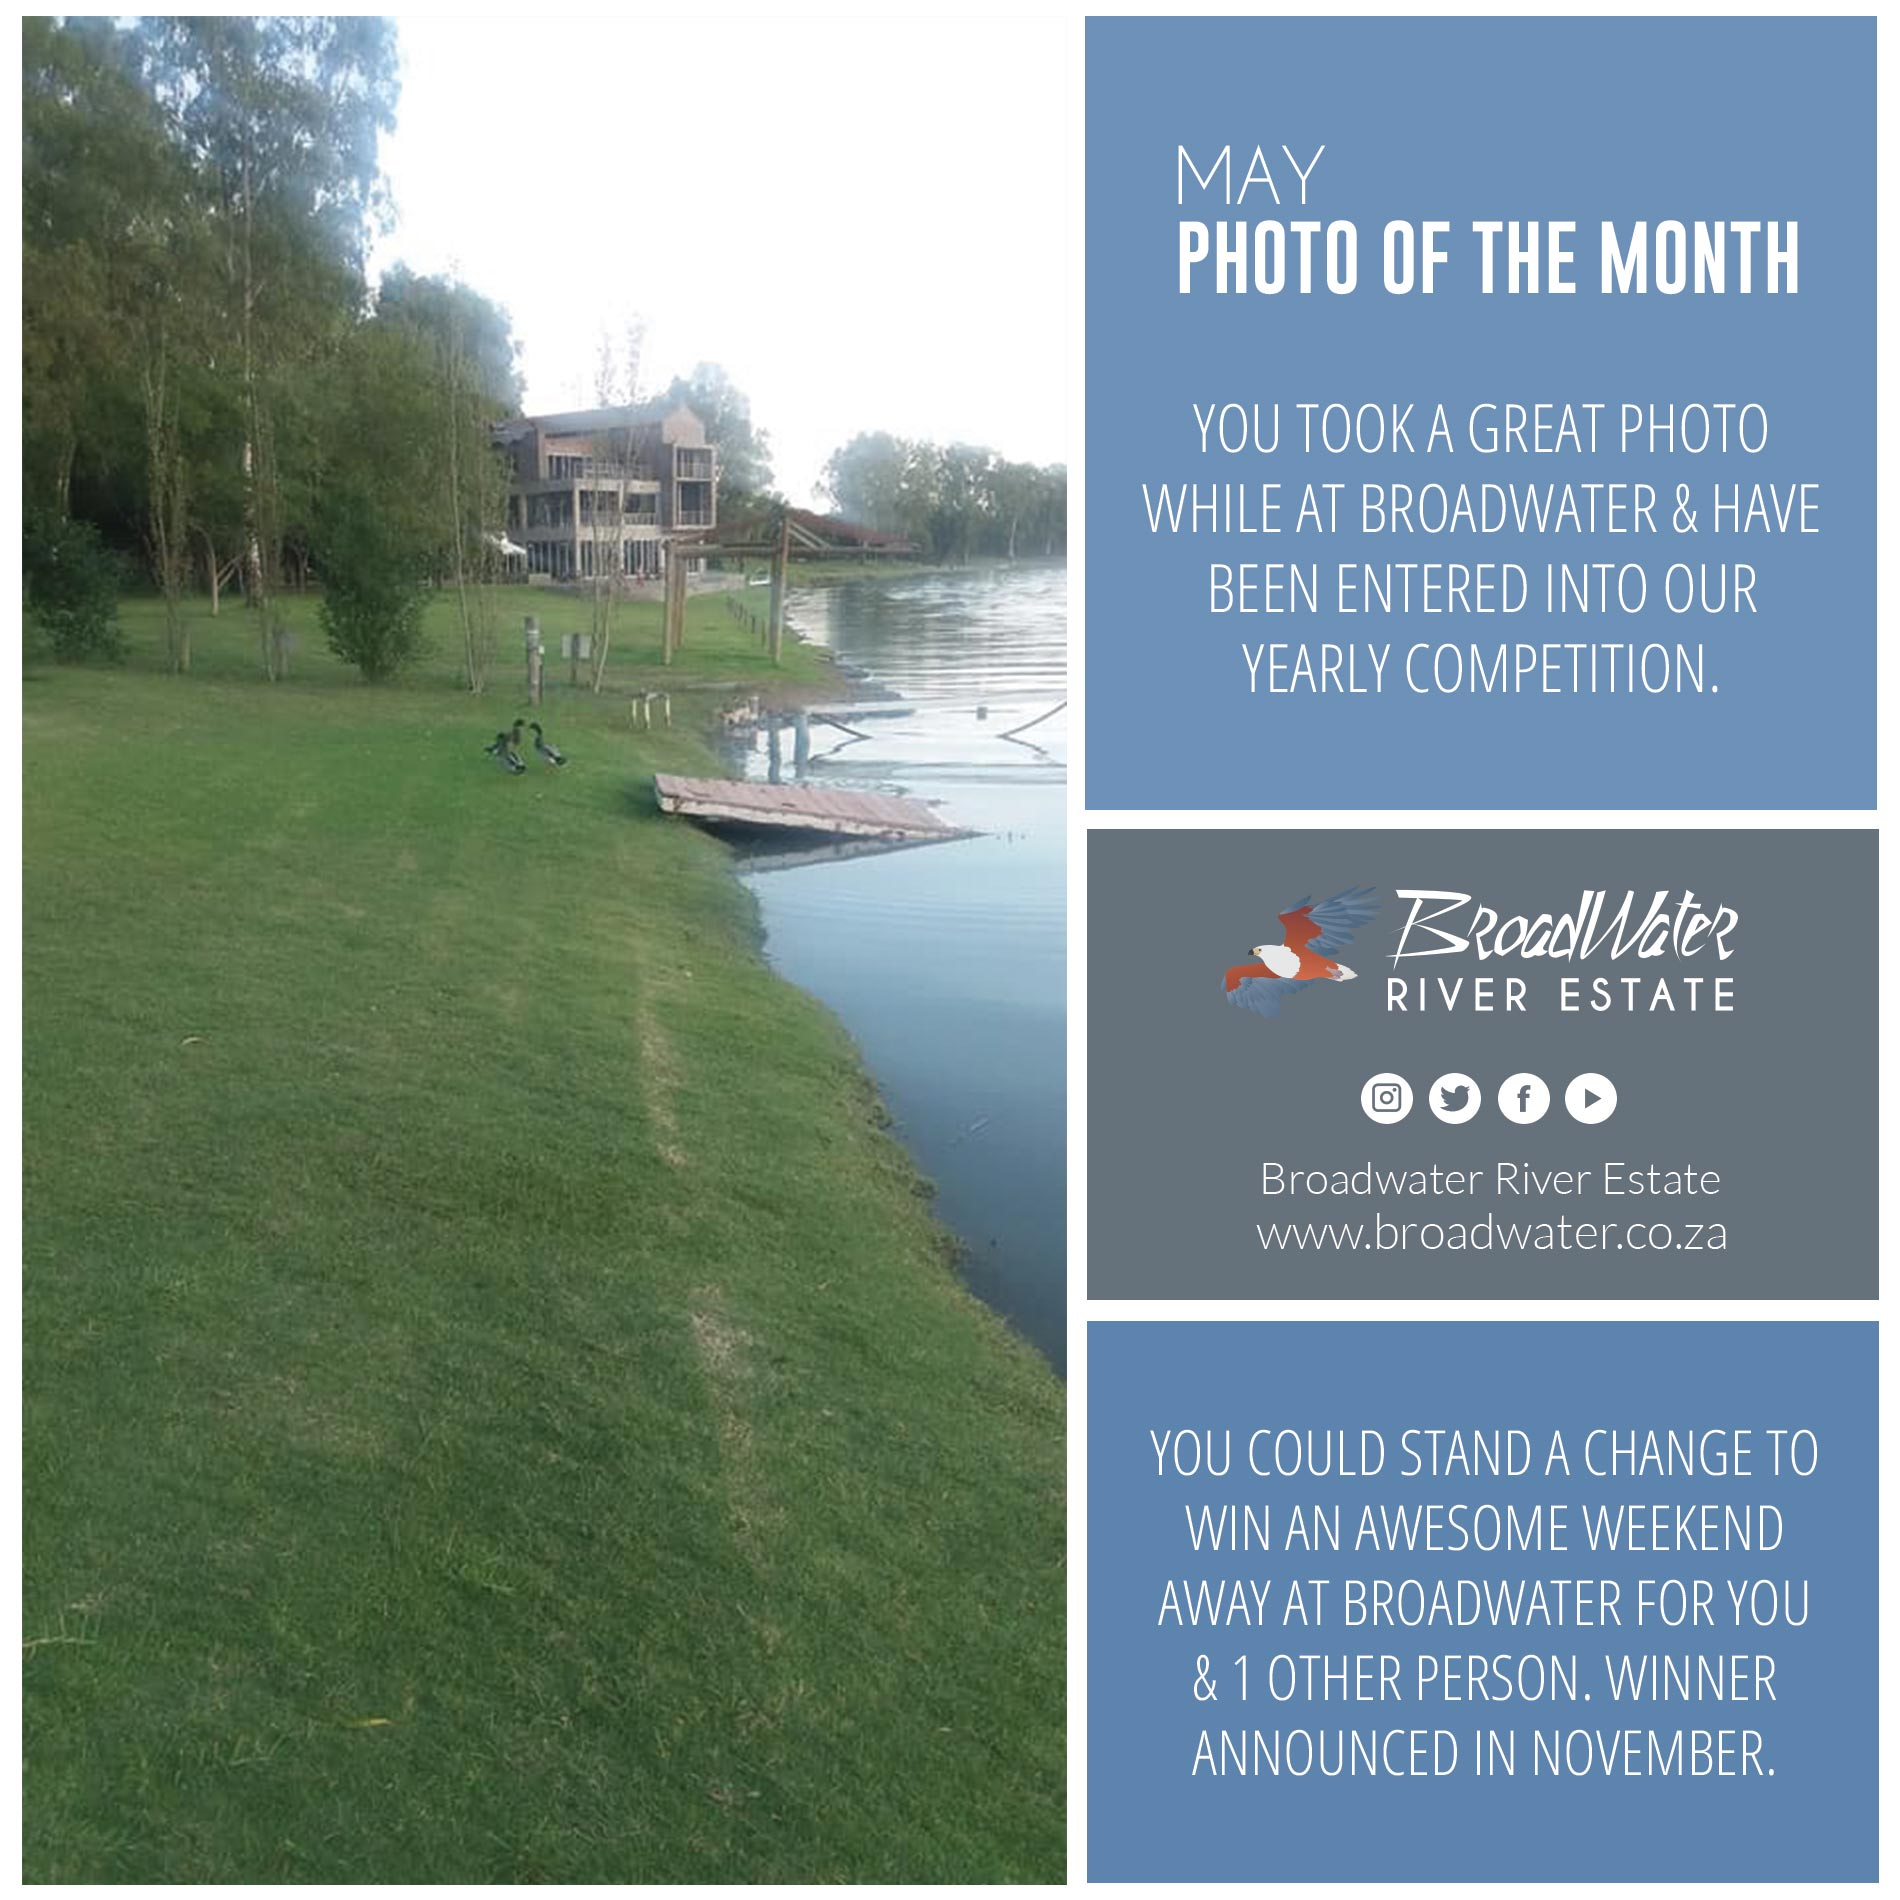 Photo of the month winner at Broadwater